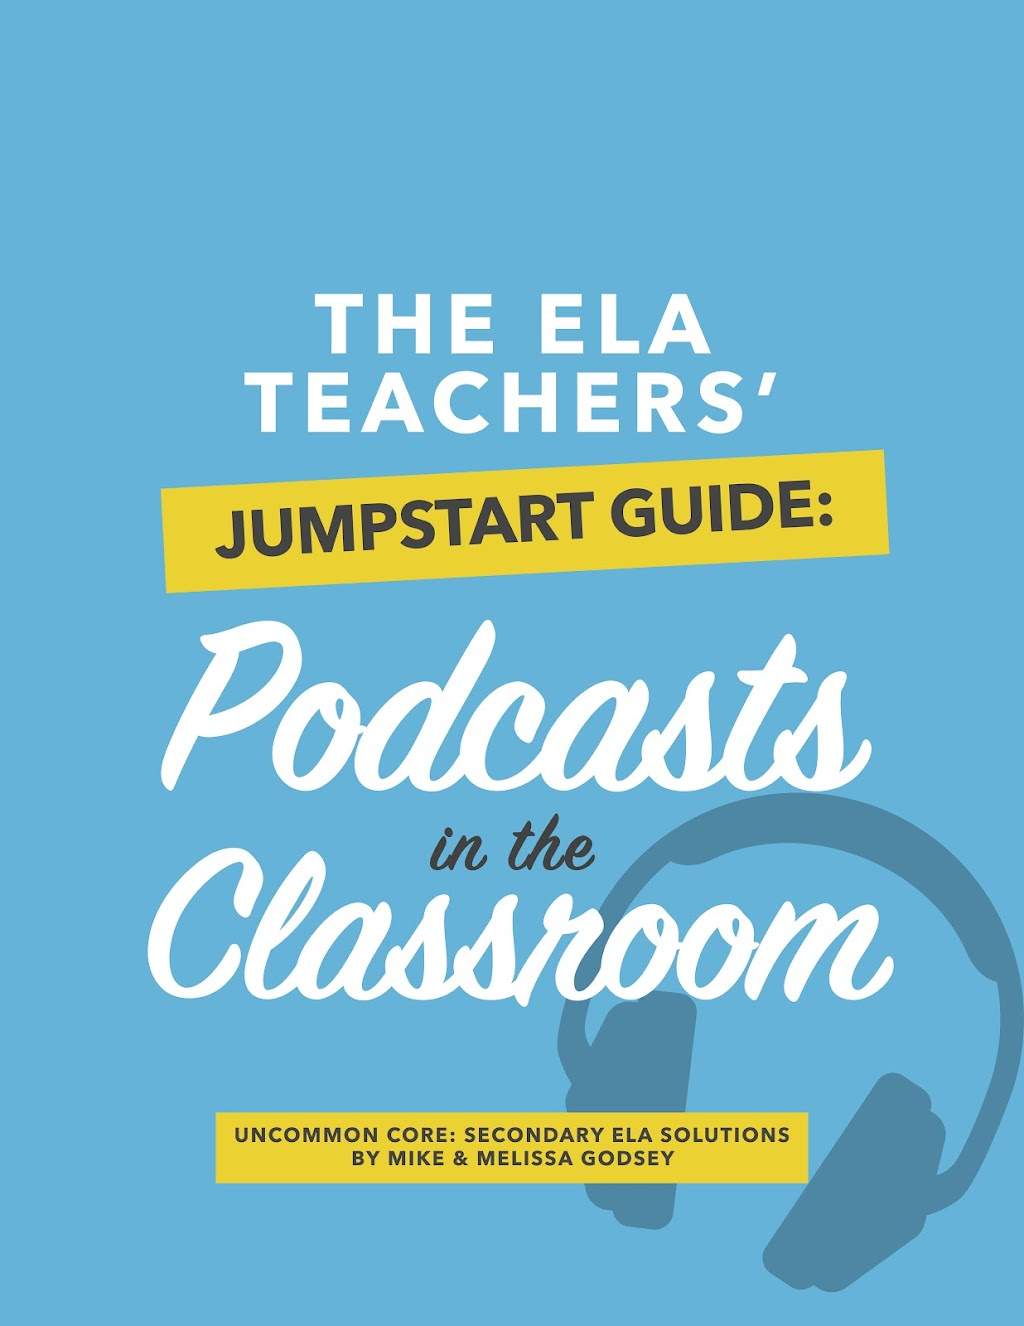 Podcasts in the Classroom Jumpstart Guide